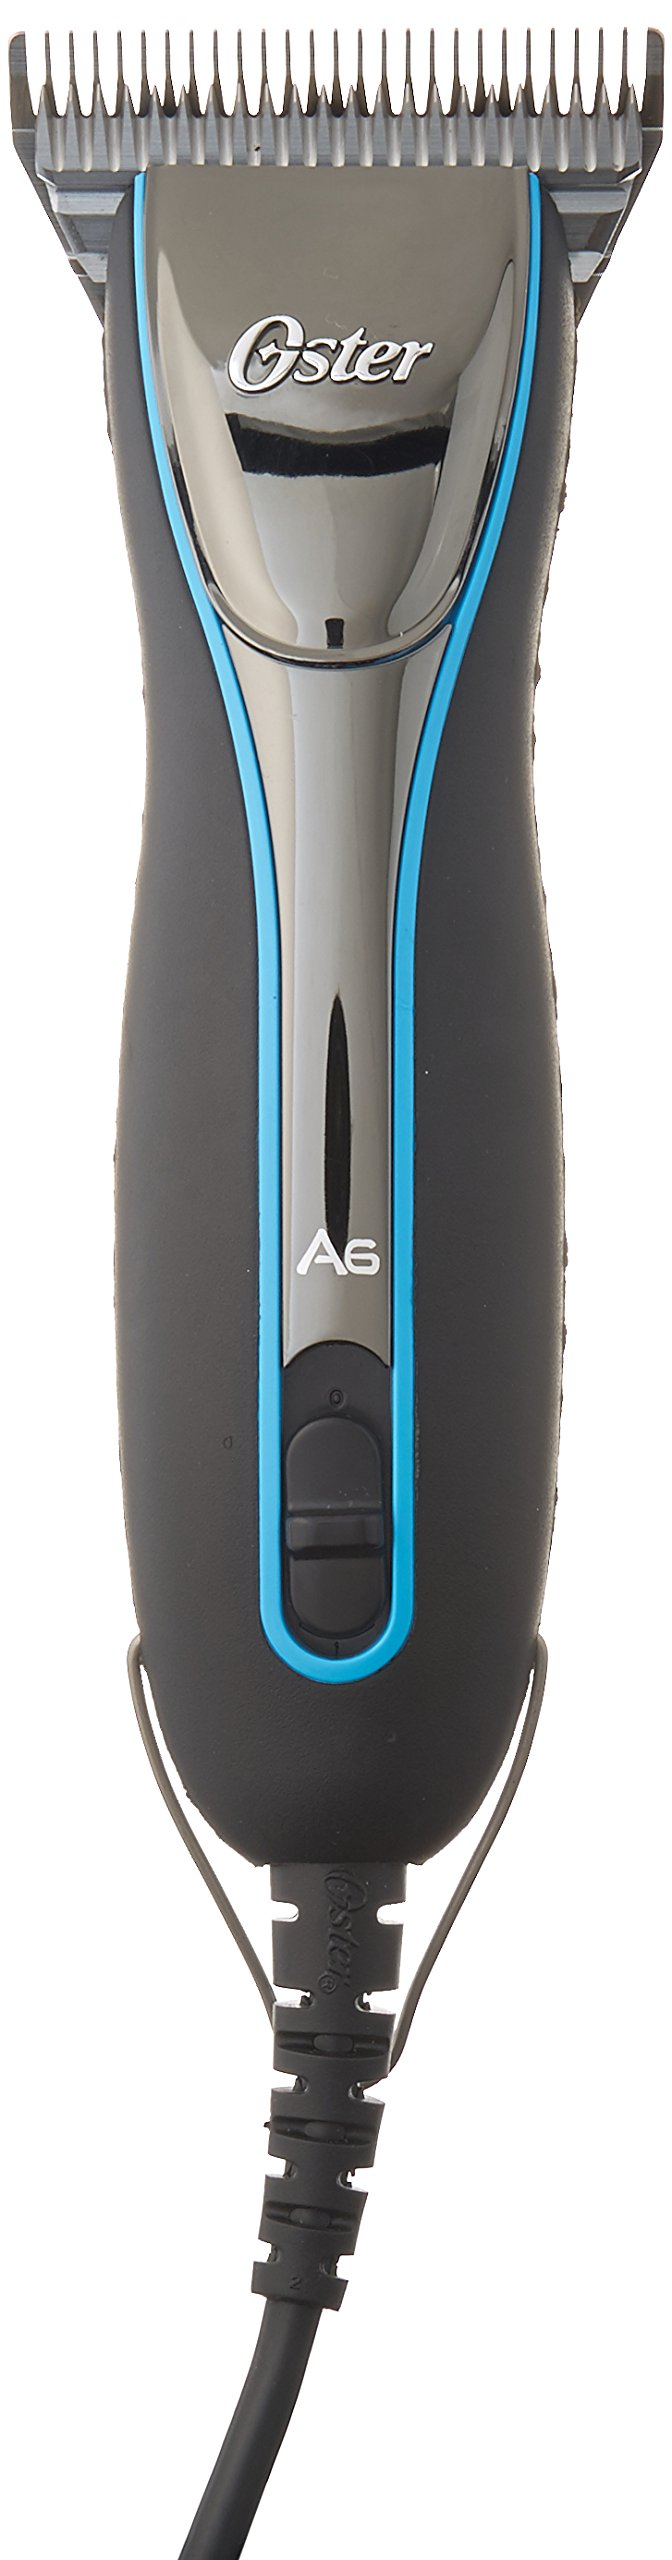 Oster A6 Cool Comfort Heavy Duty Pet Grooming Clippers with Detachable CryogenX #10 Blade, 3 Speed (0-34264-45709-6)